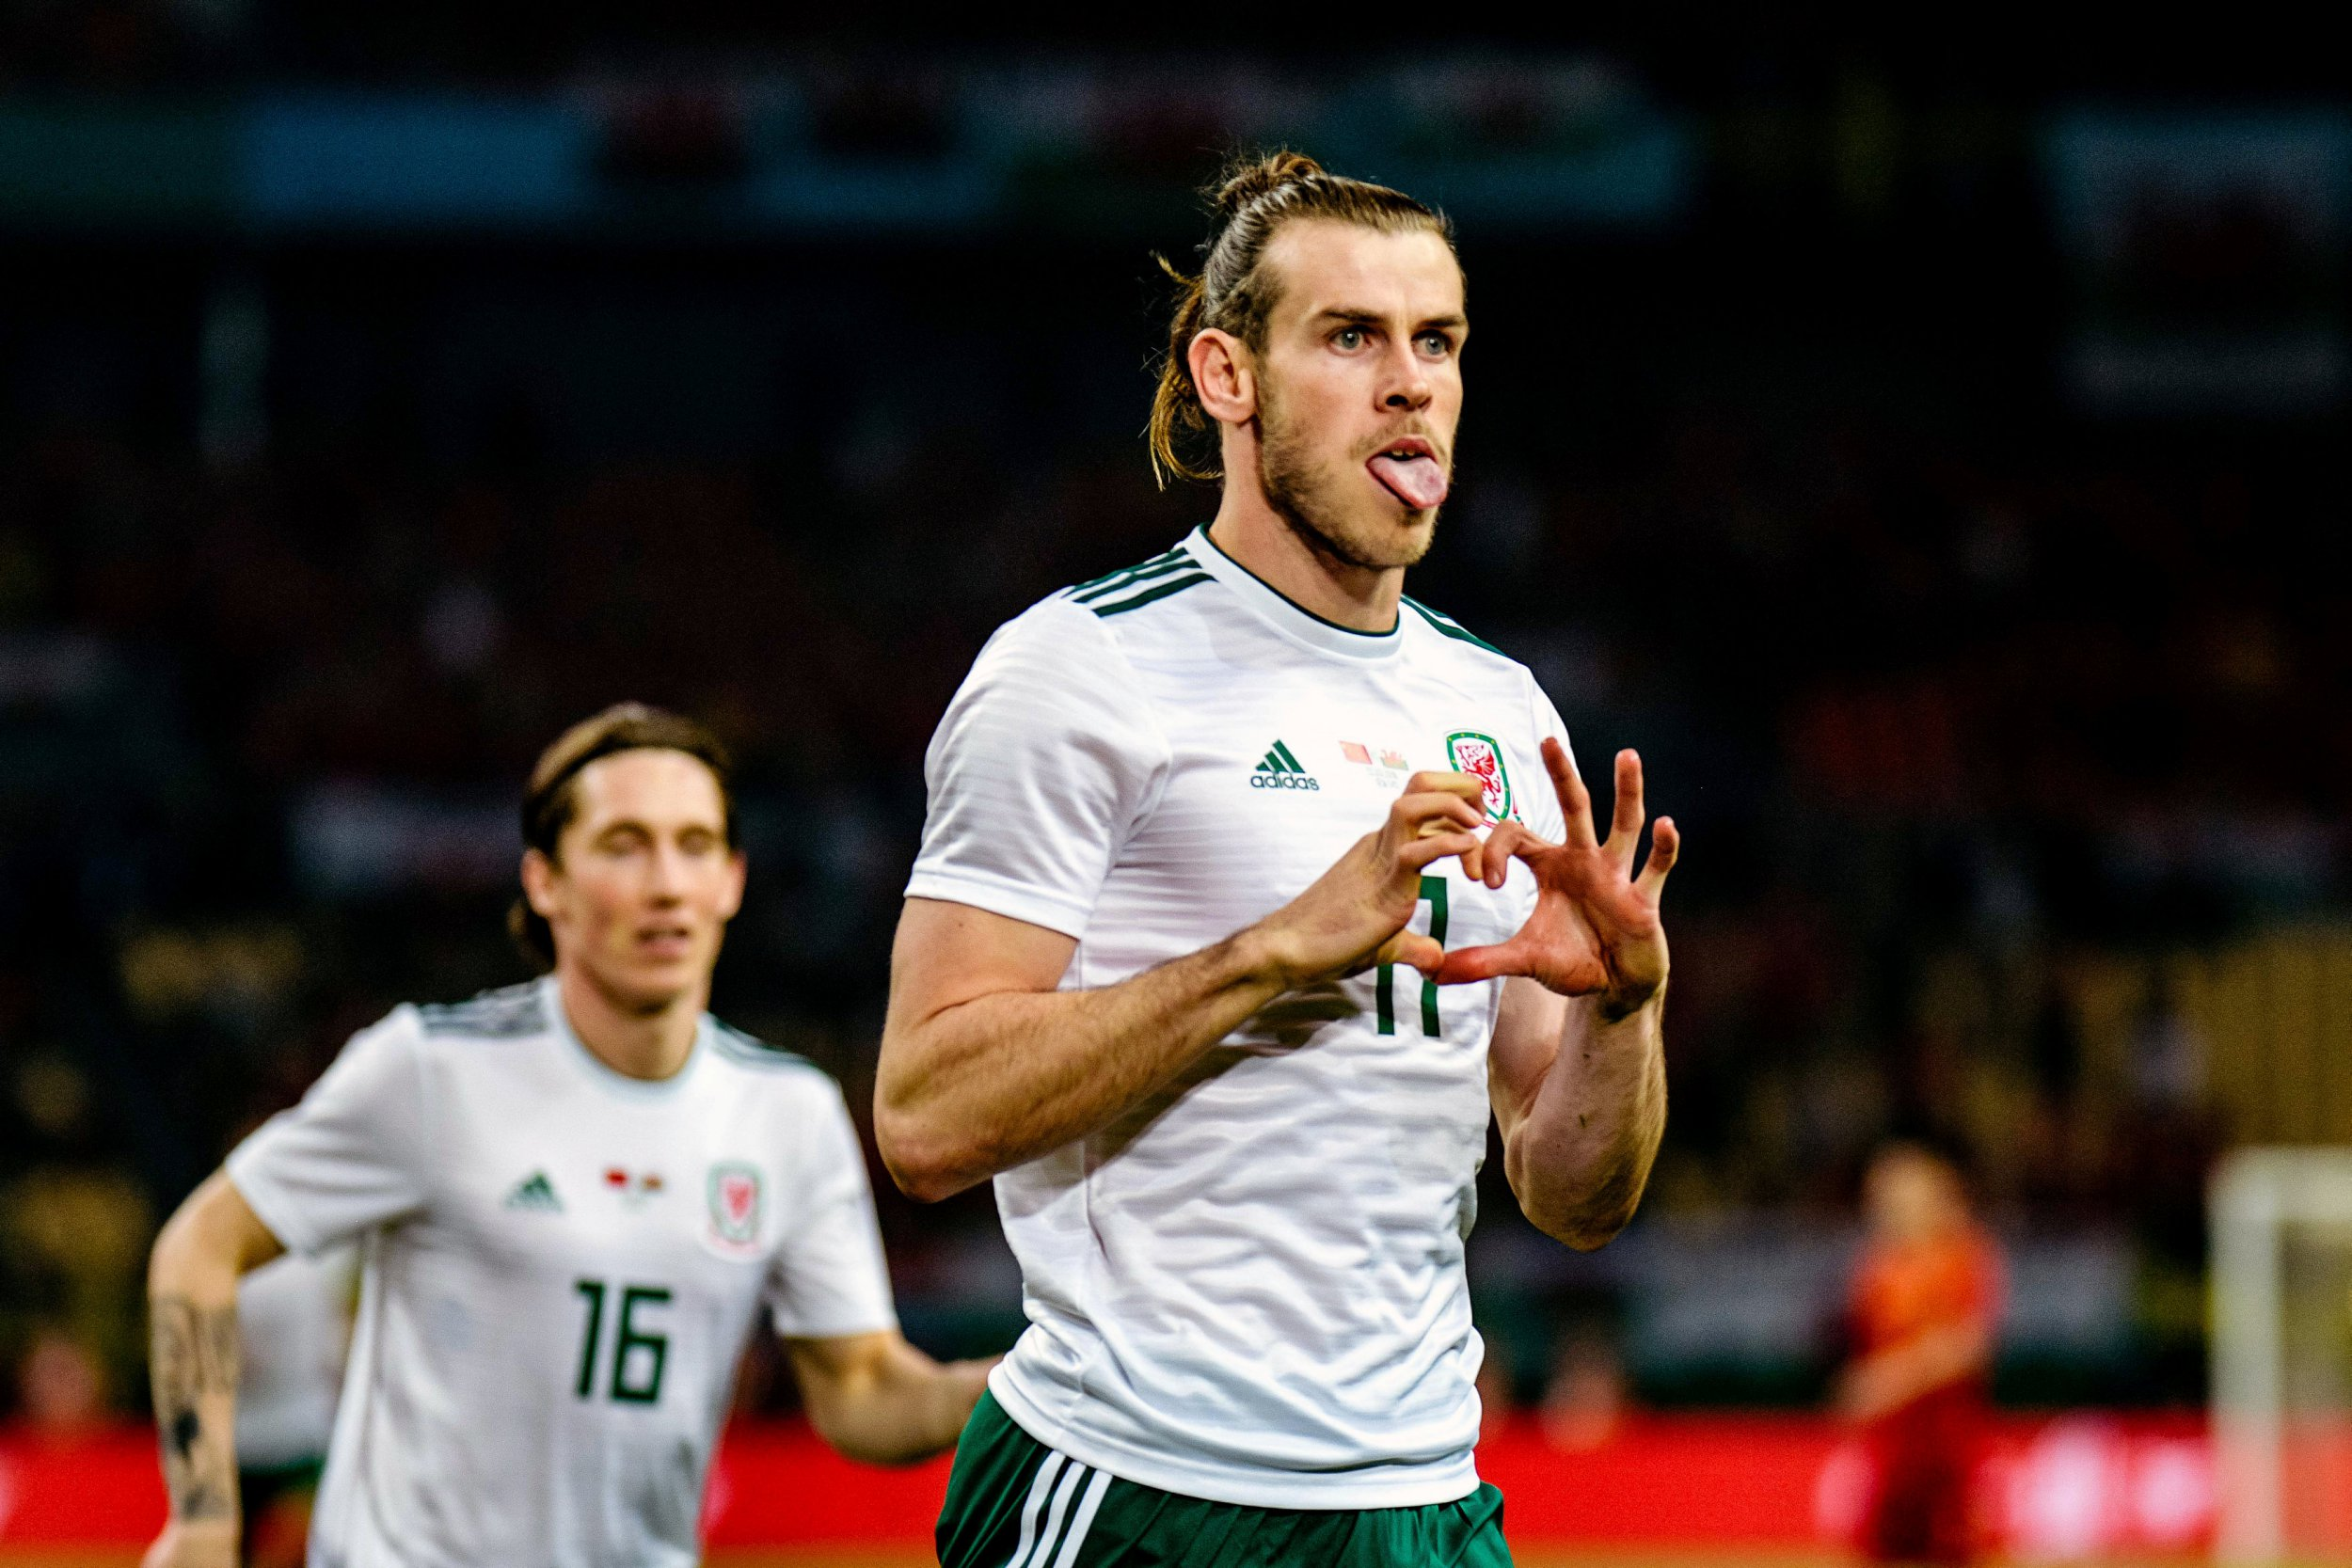 Gareth Bale should reject Manchester United, says Ryan Giggs